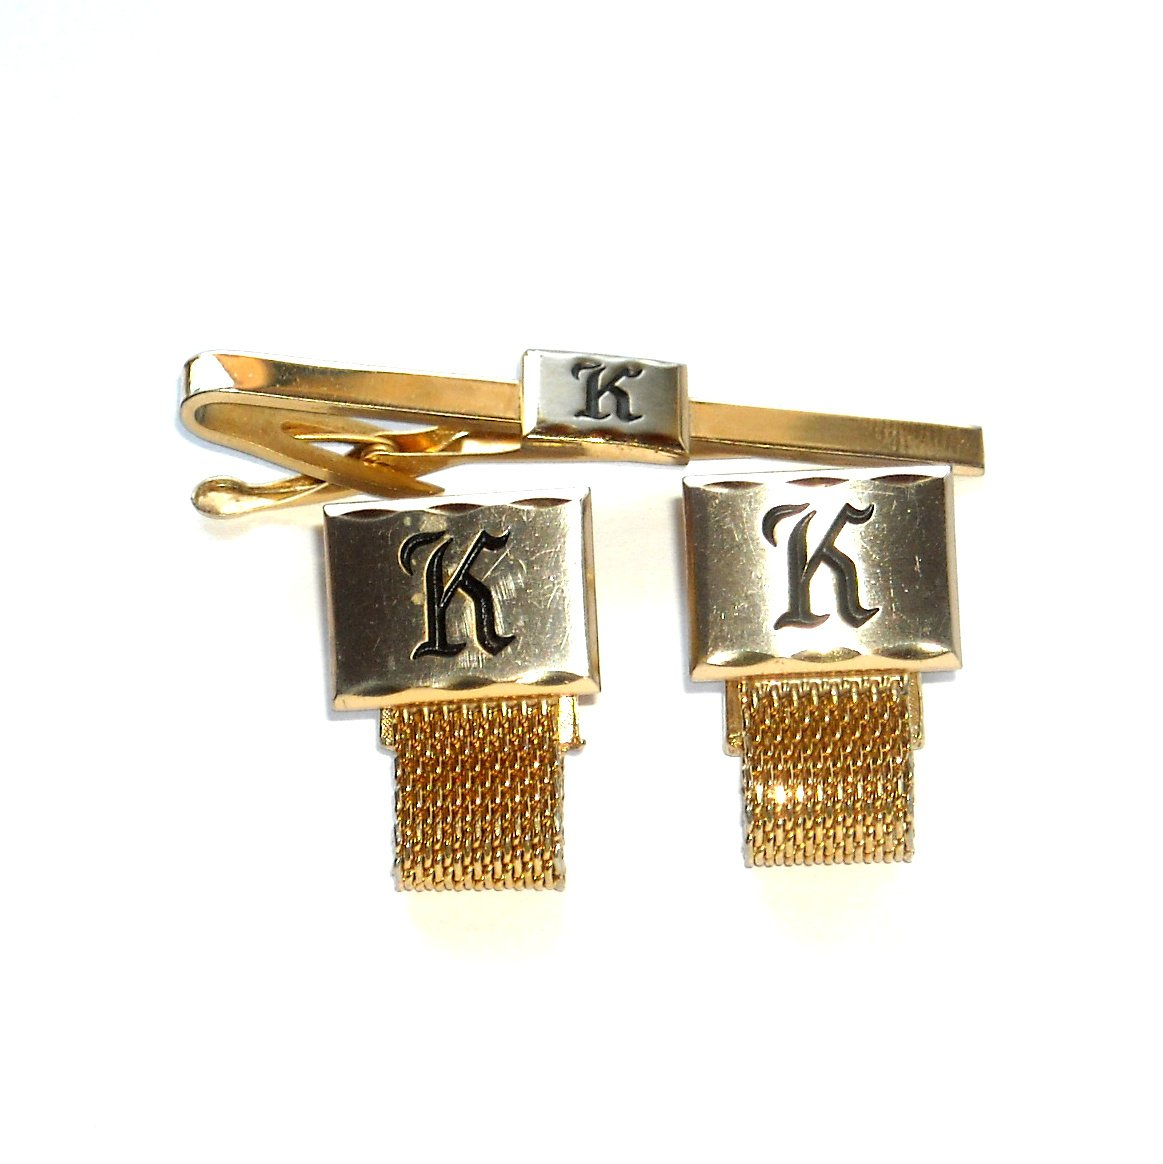 Initial Letter K Chain Mesh Gold Silver Color Hickok Cufflinks Tie Clip